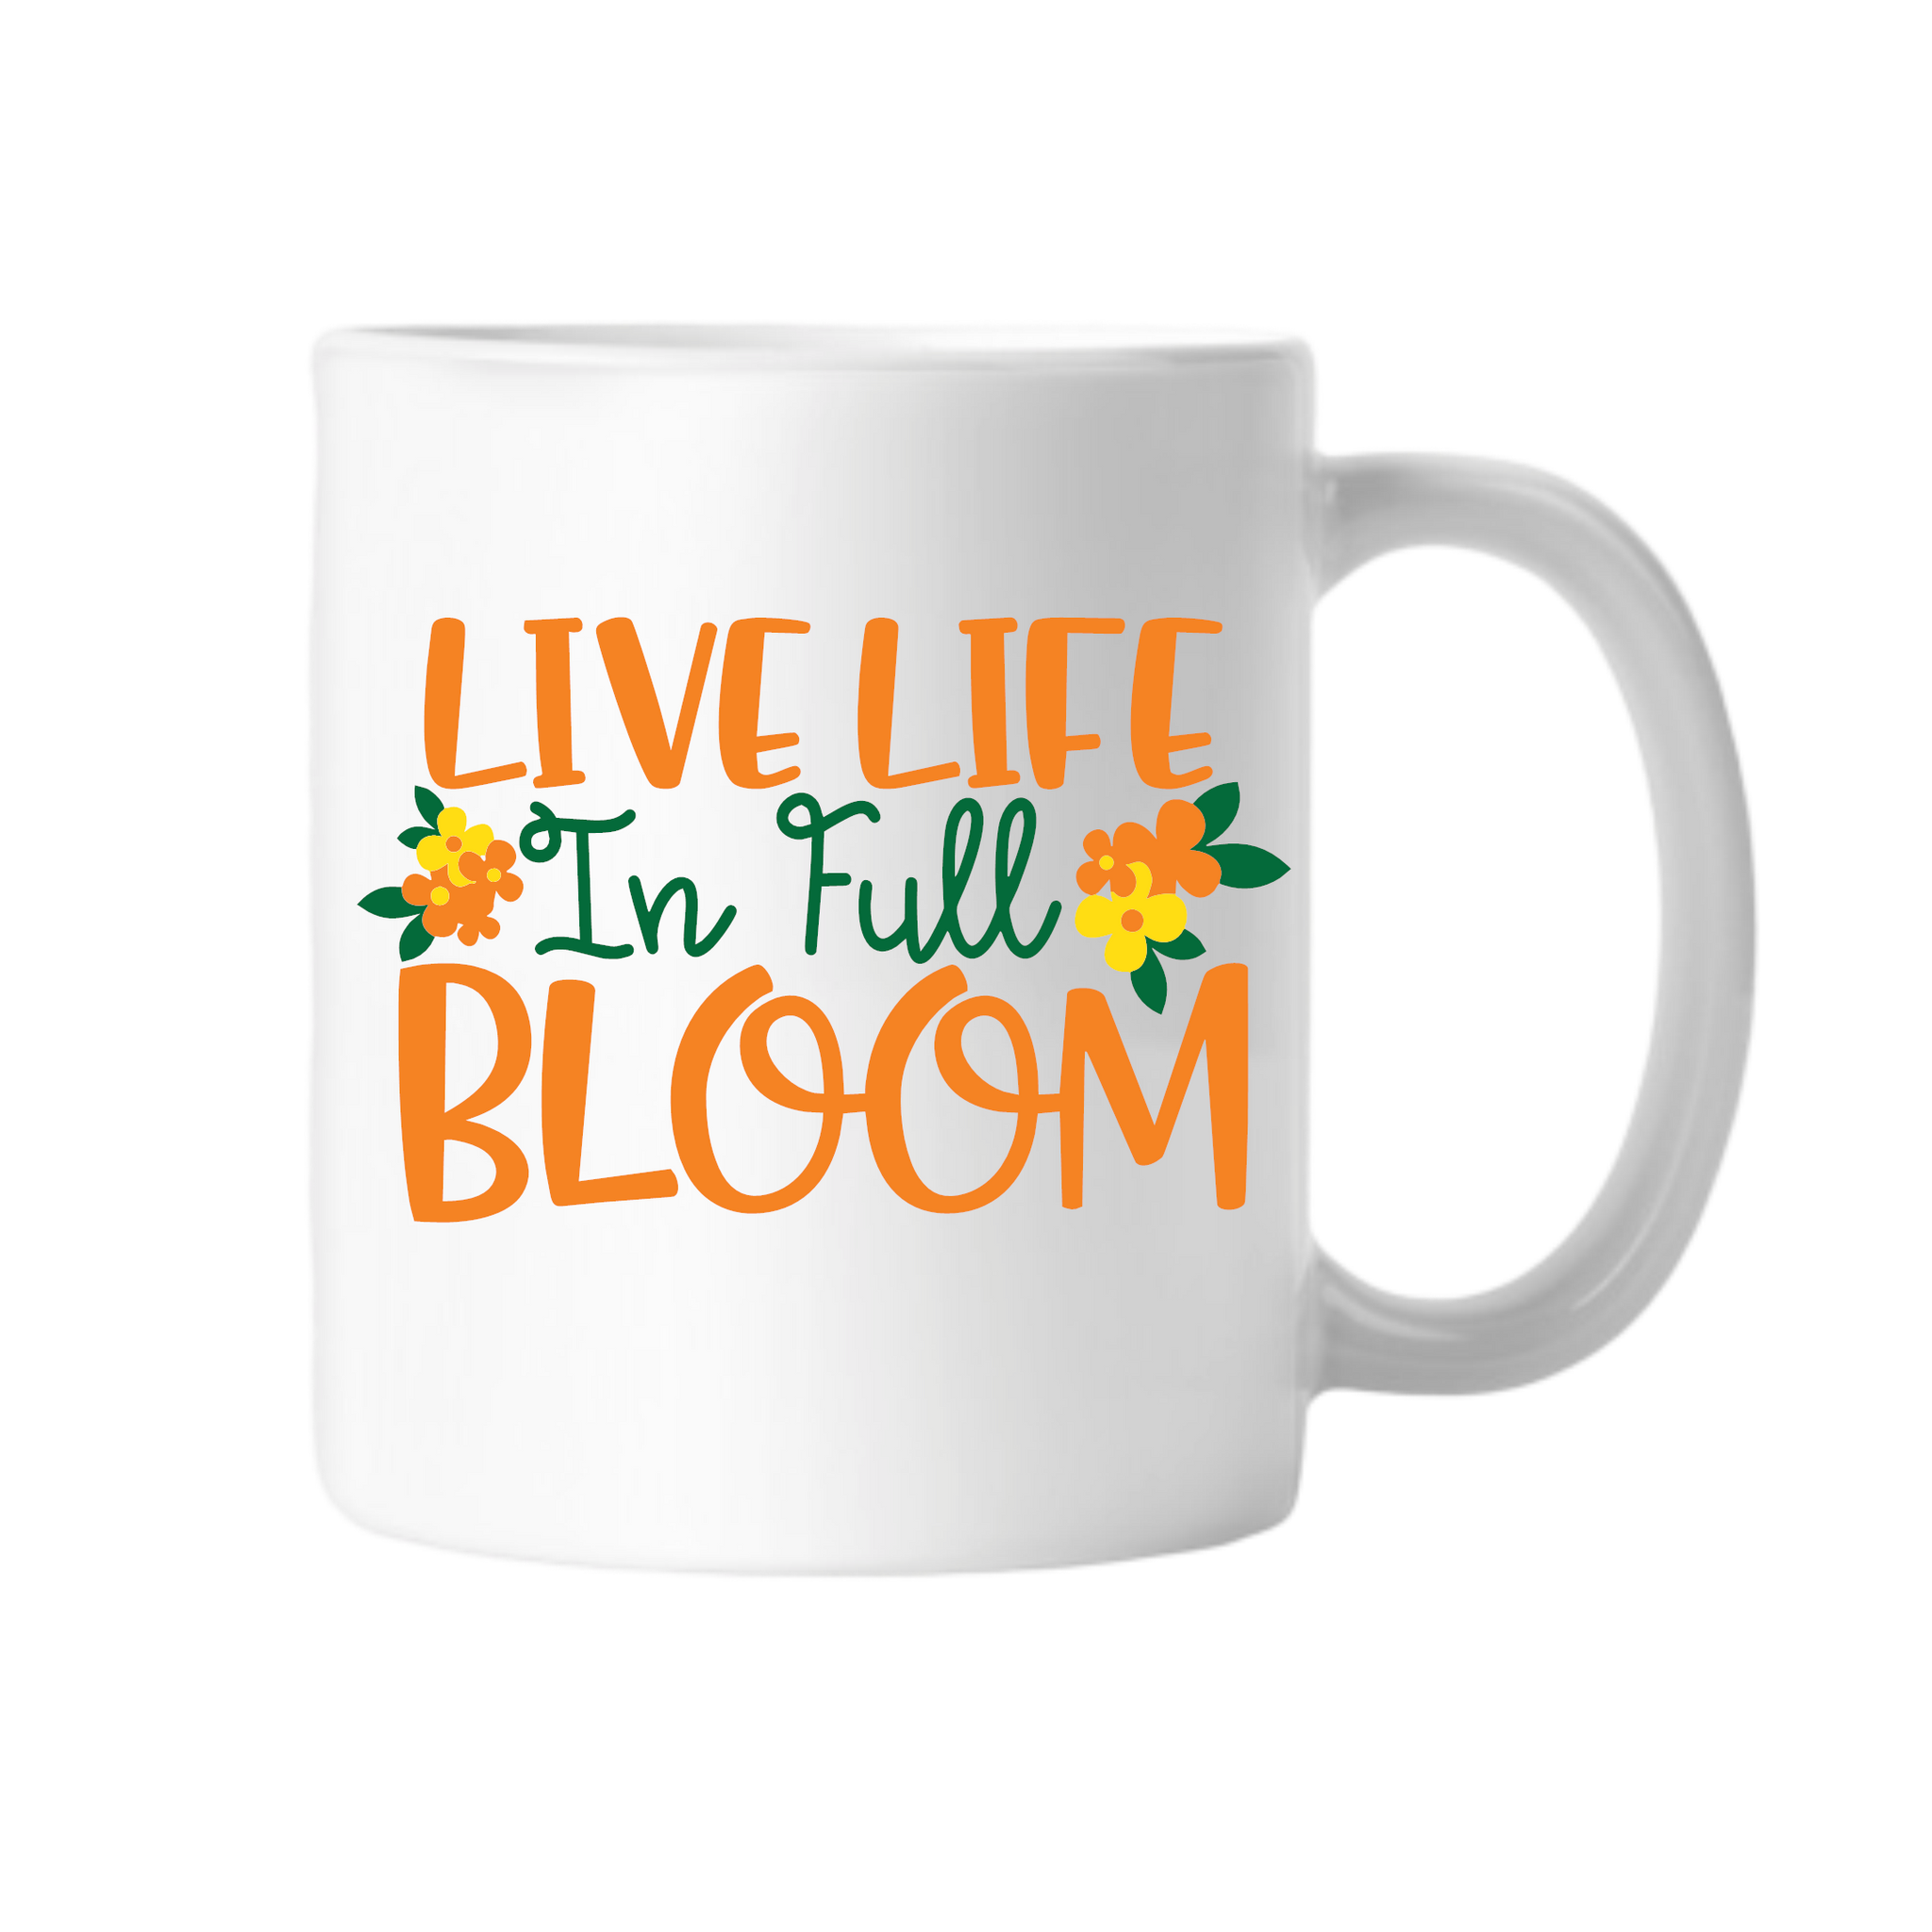 Live Life In Full Bloom - Tee Size Me